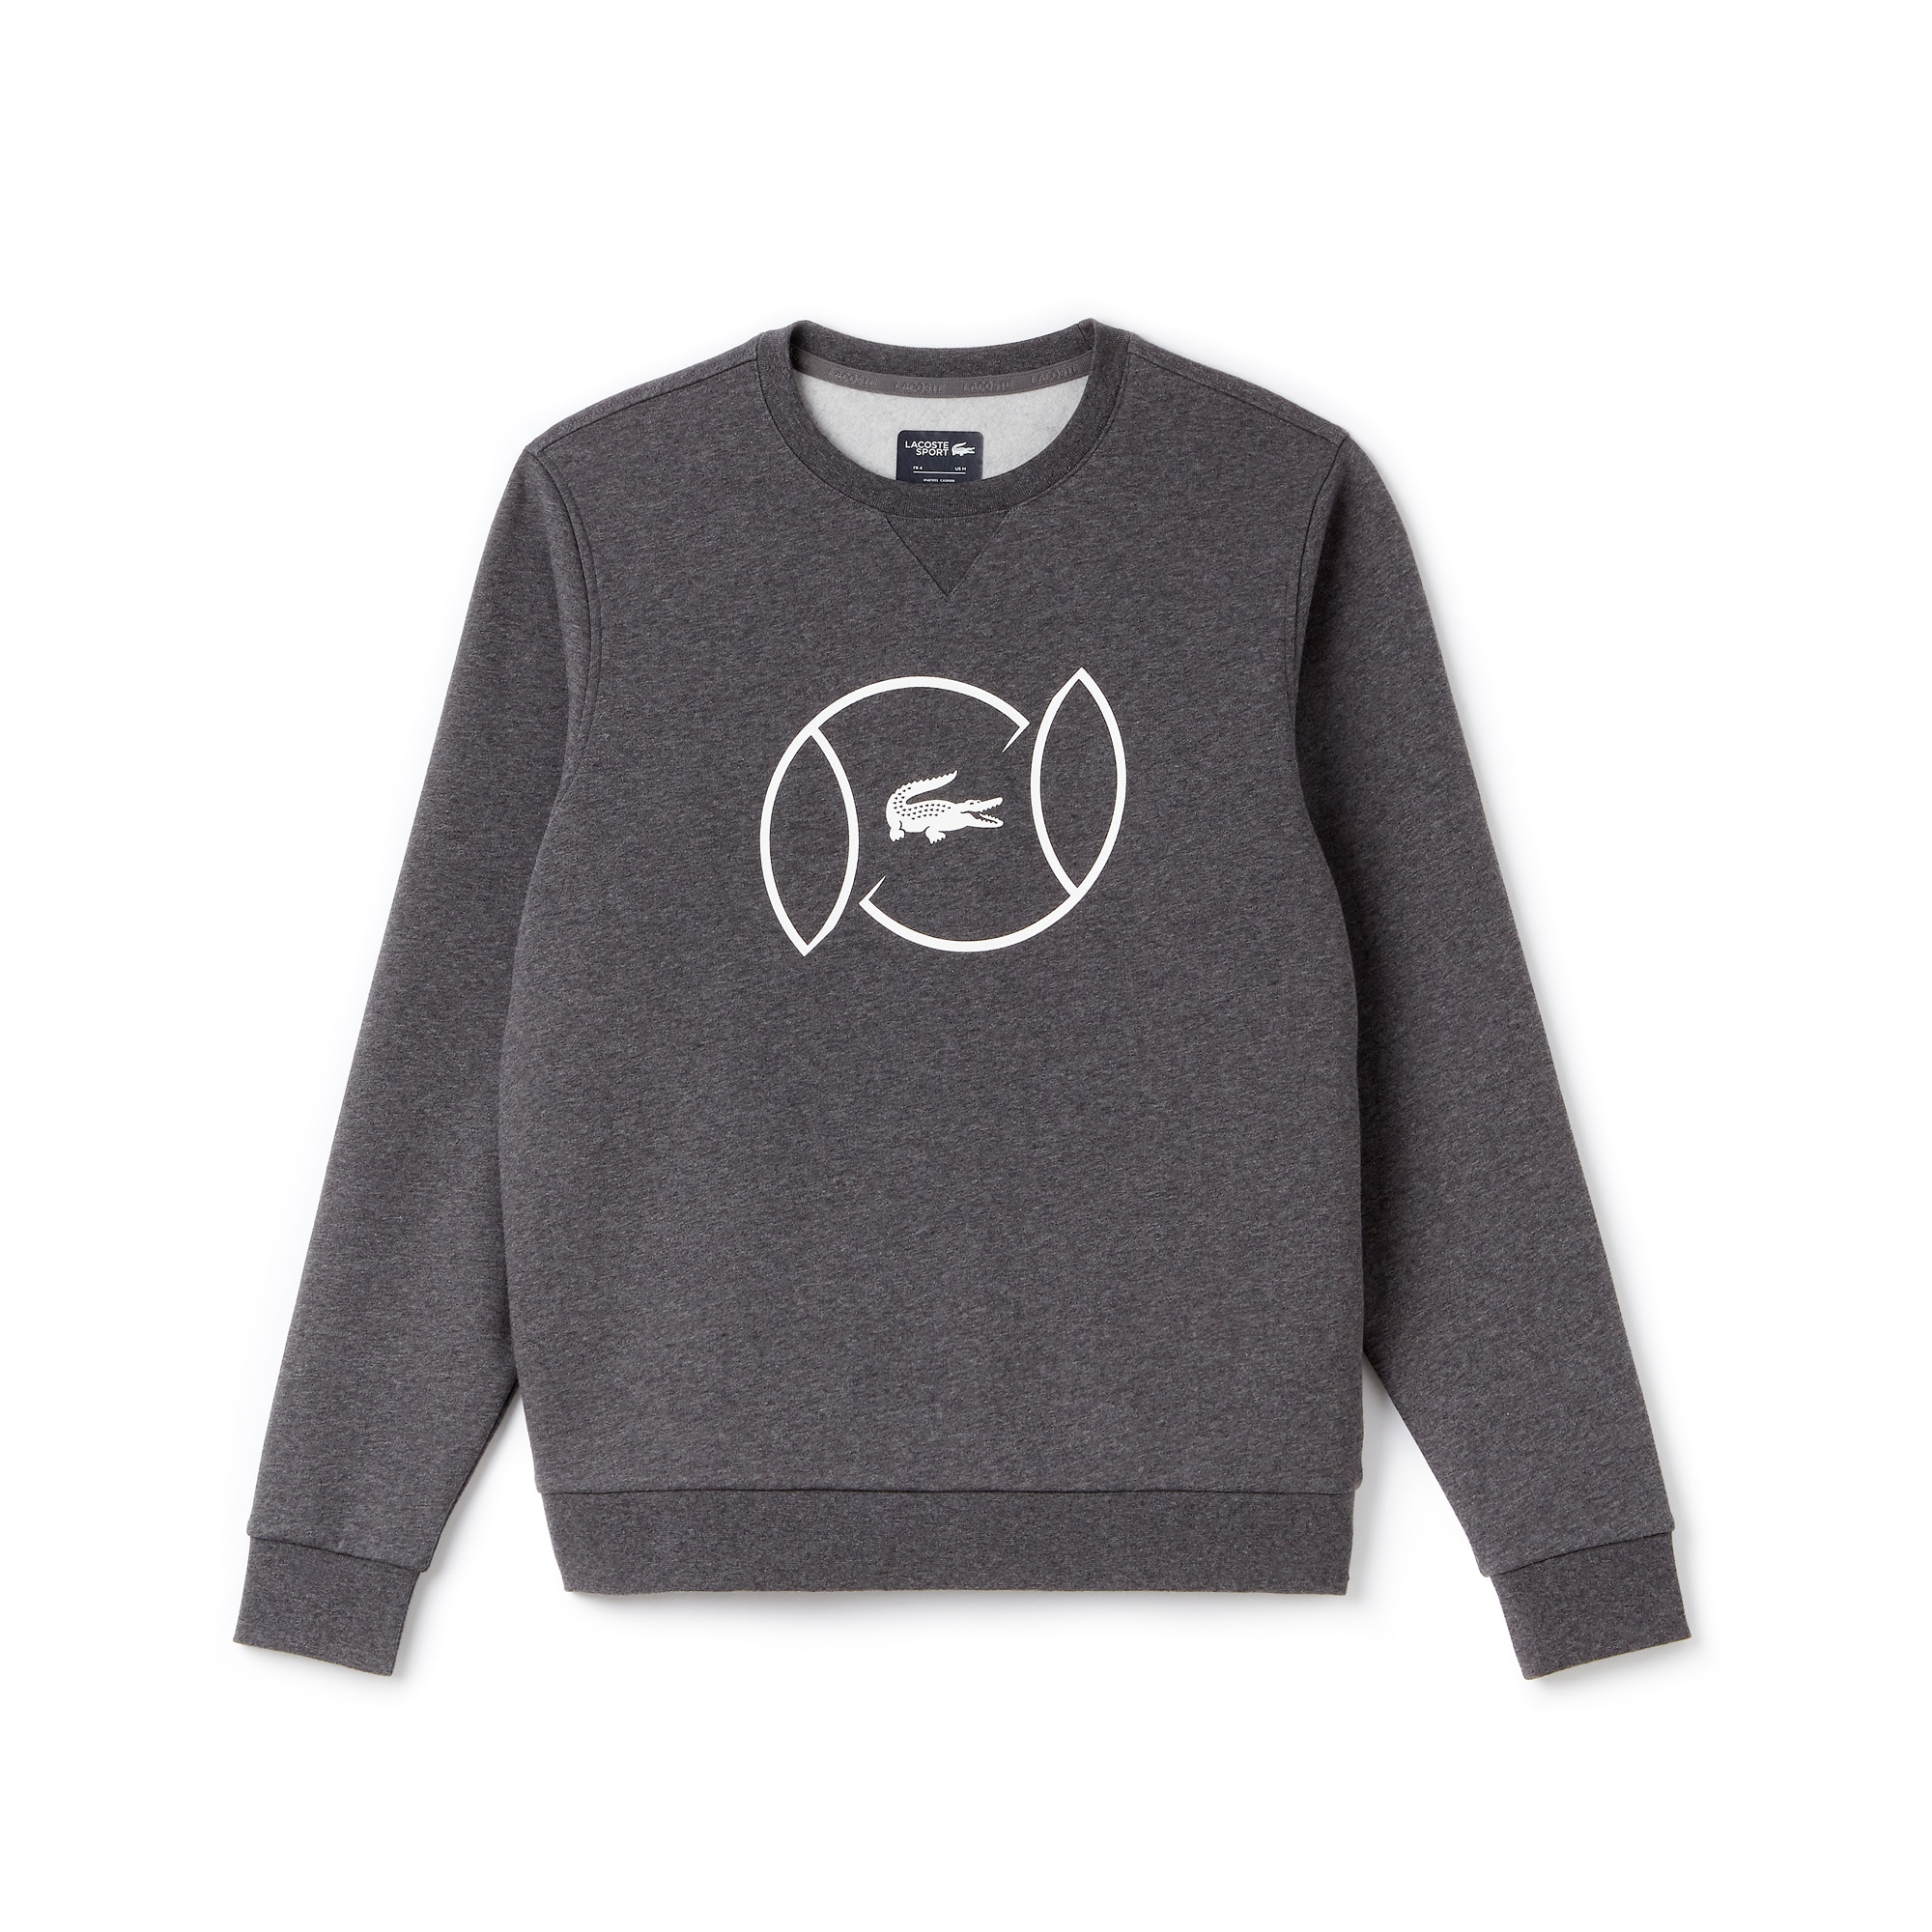 Men's SPORT Fleece And Lettering Tennis Sweatshirt